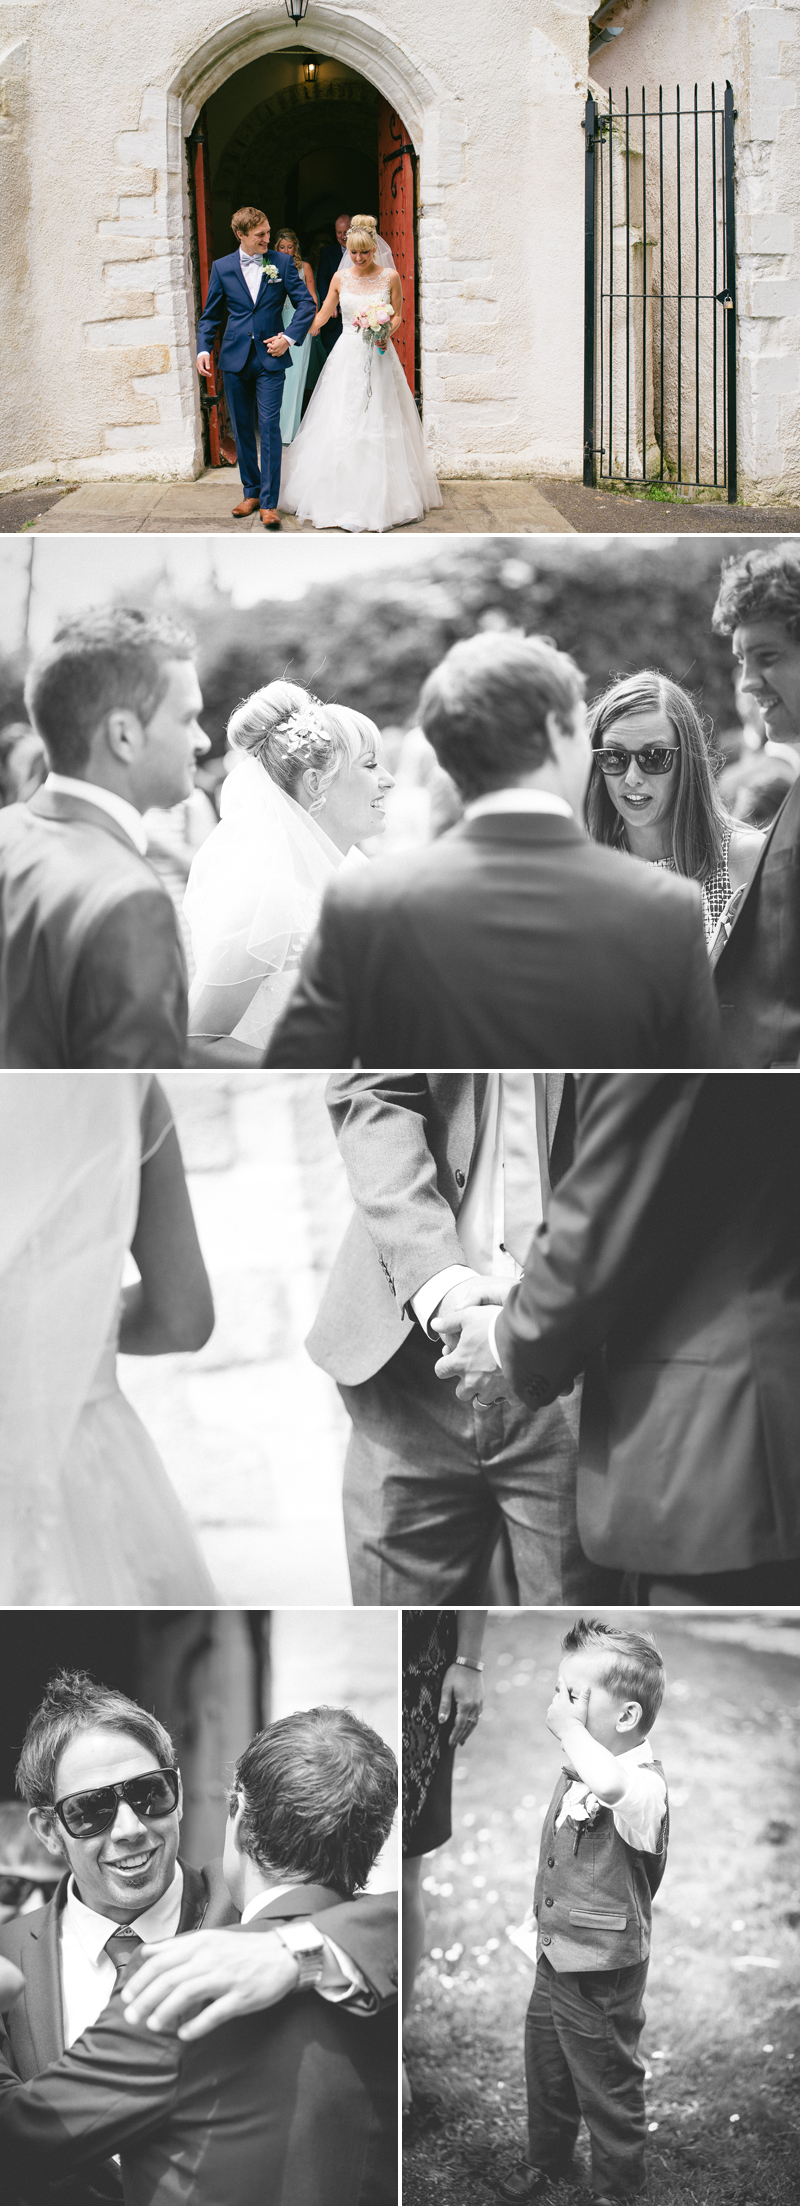 newlyweds coming out of the church photos